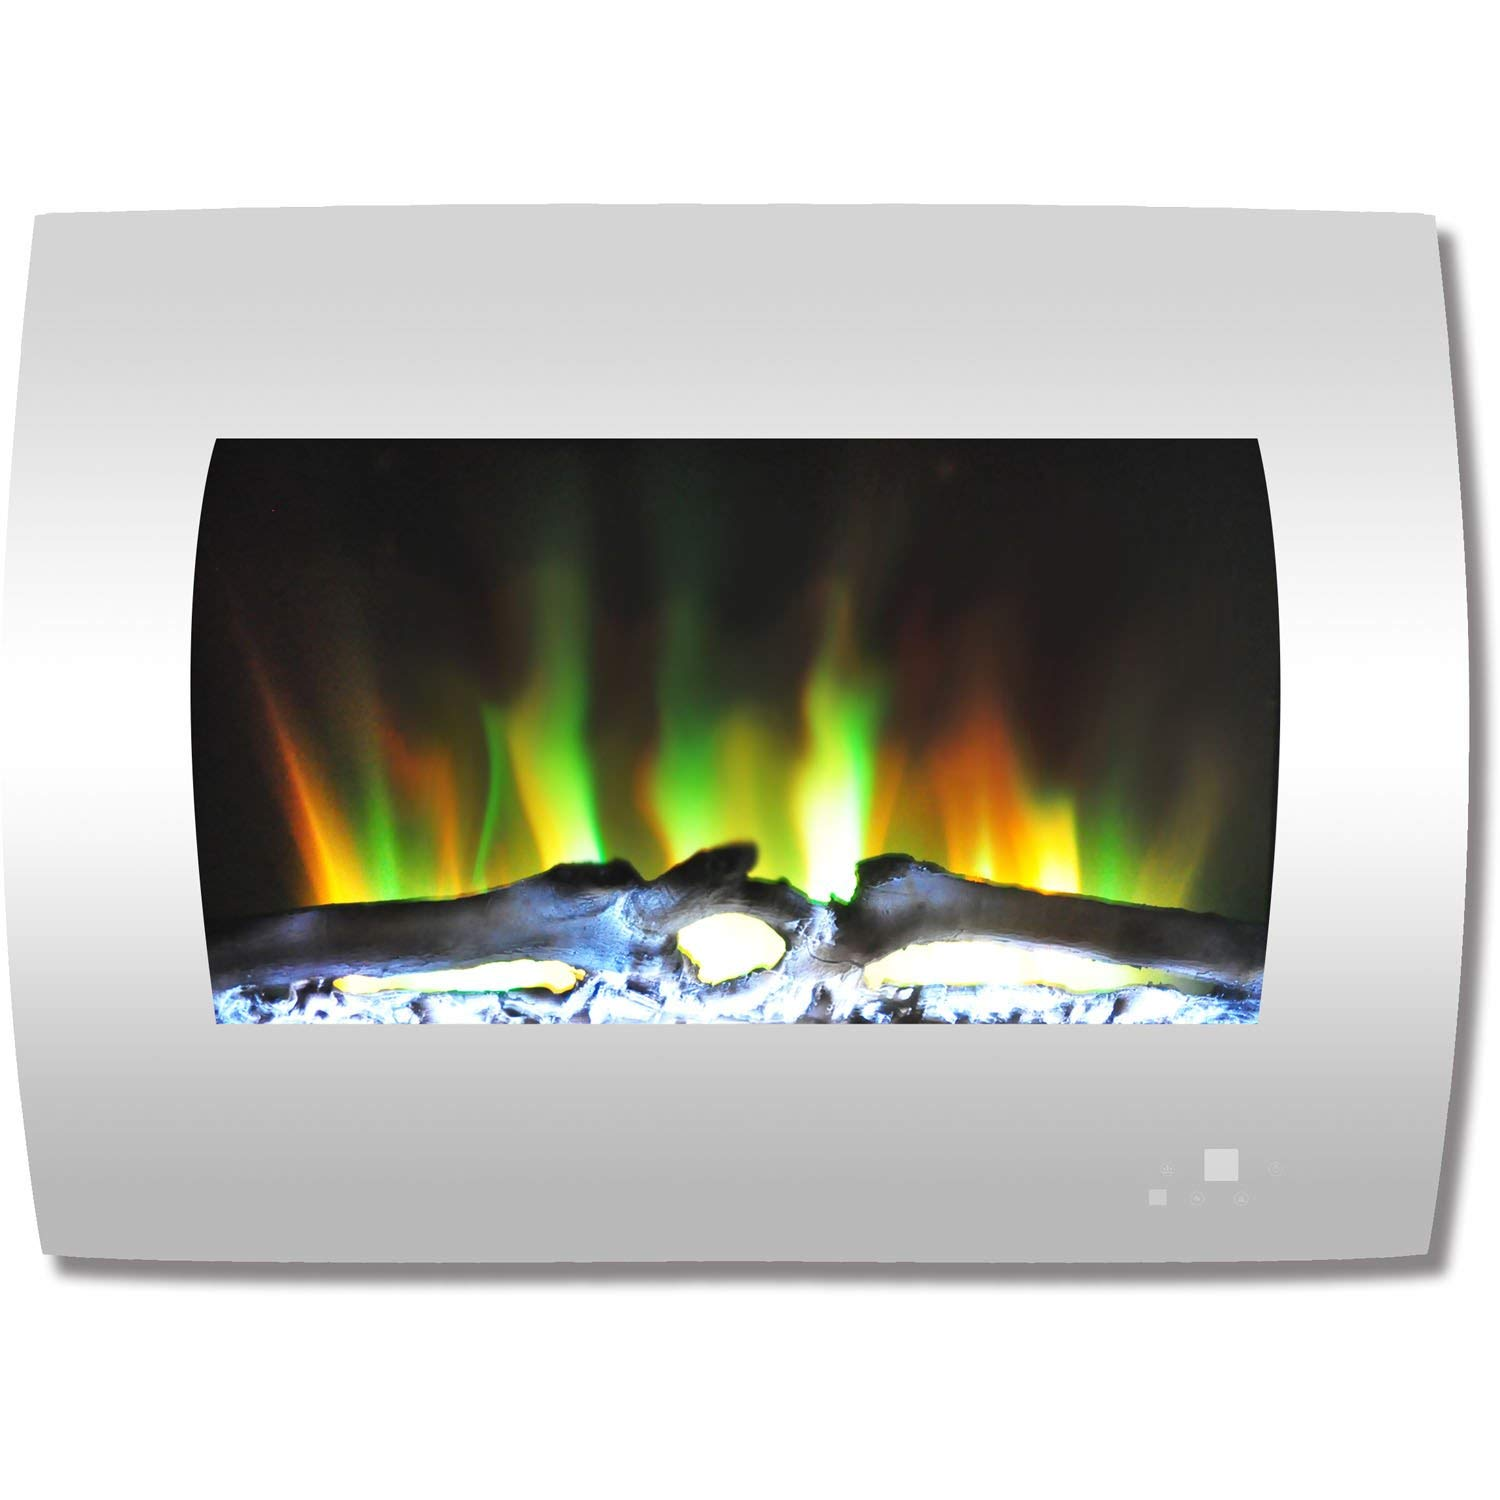 Cambridge CAM26WMEF-2WHT 26 In. Curved Wall-Mount Electric Fireplace in White with Multi-Color Flames and Log Display